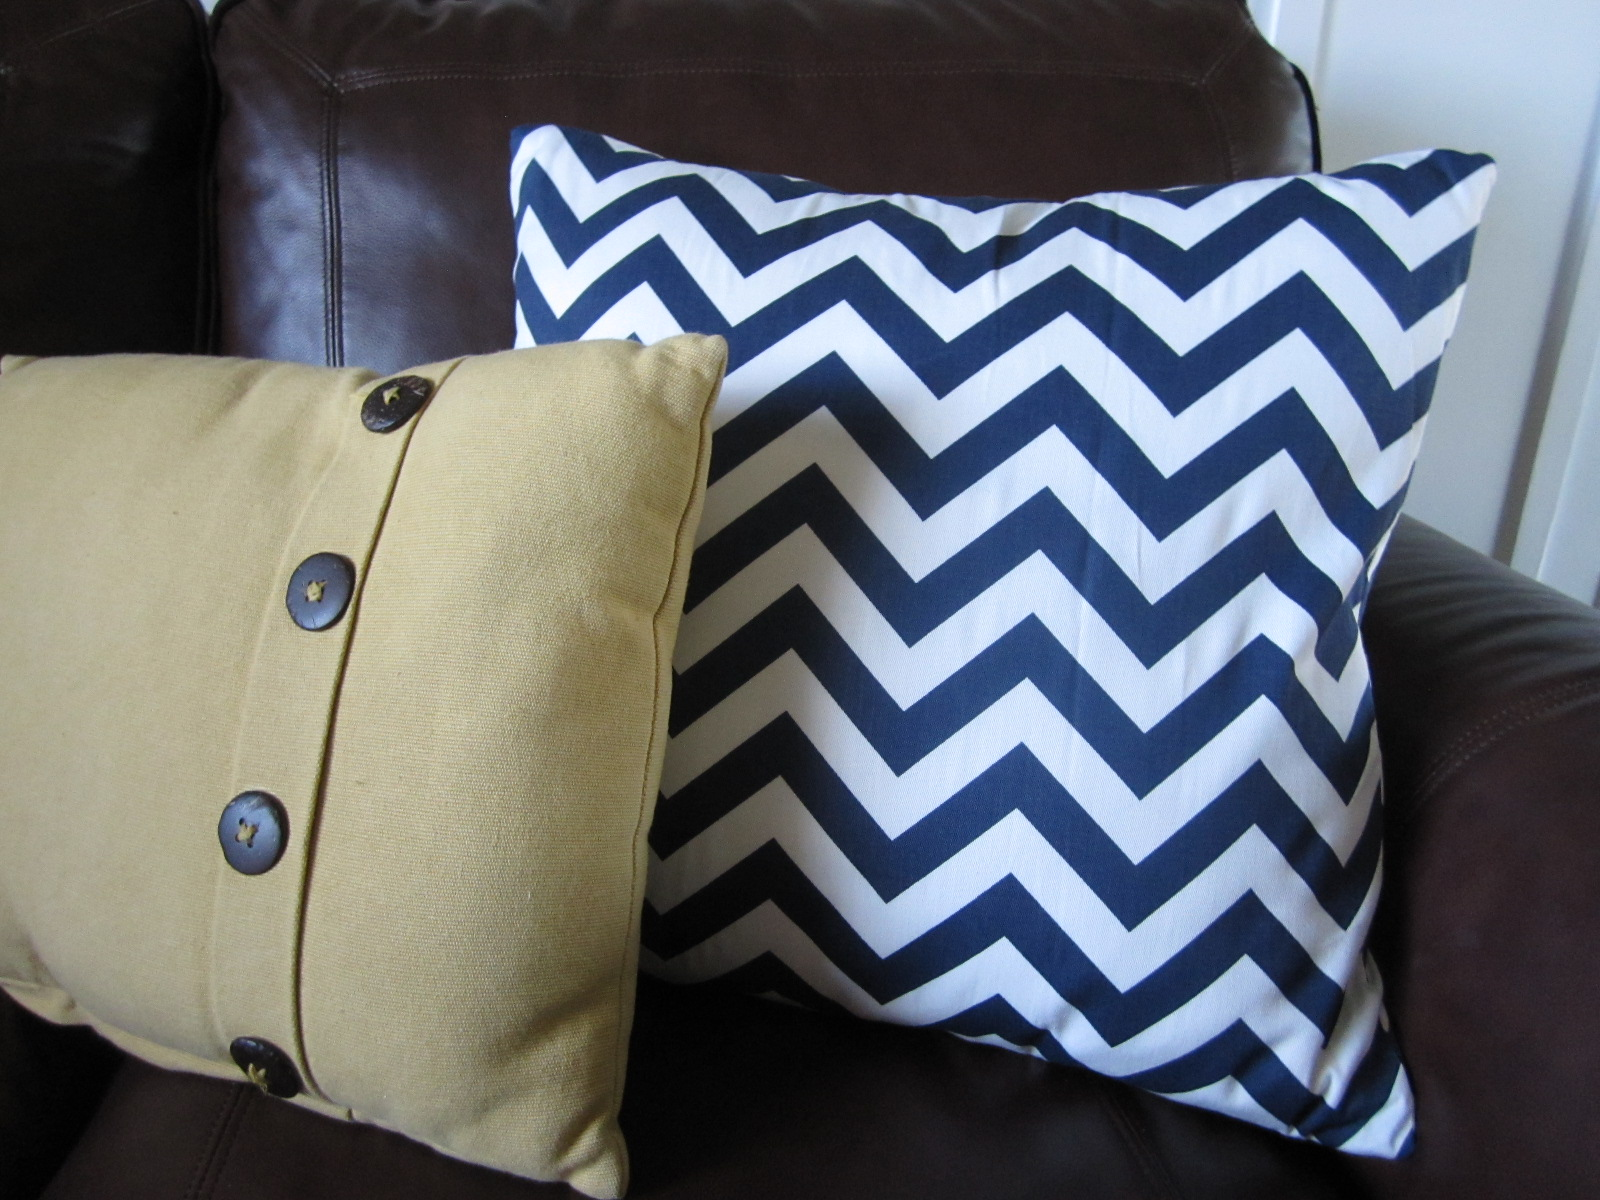 How To Make Throw Pillow With Zipper : KrisKraft: Easy DIY Throw Pillows